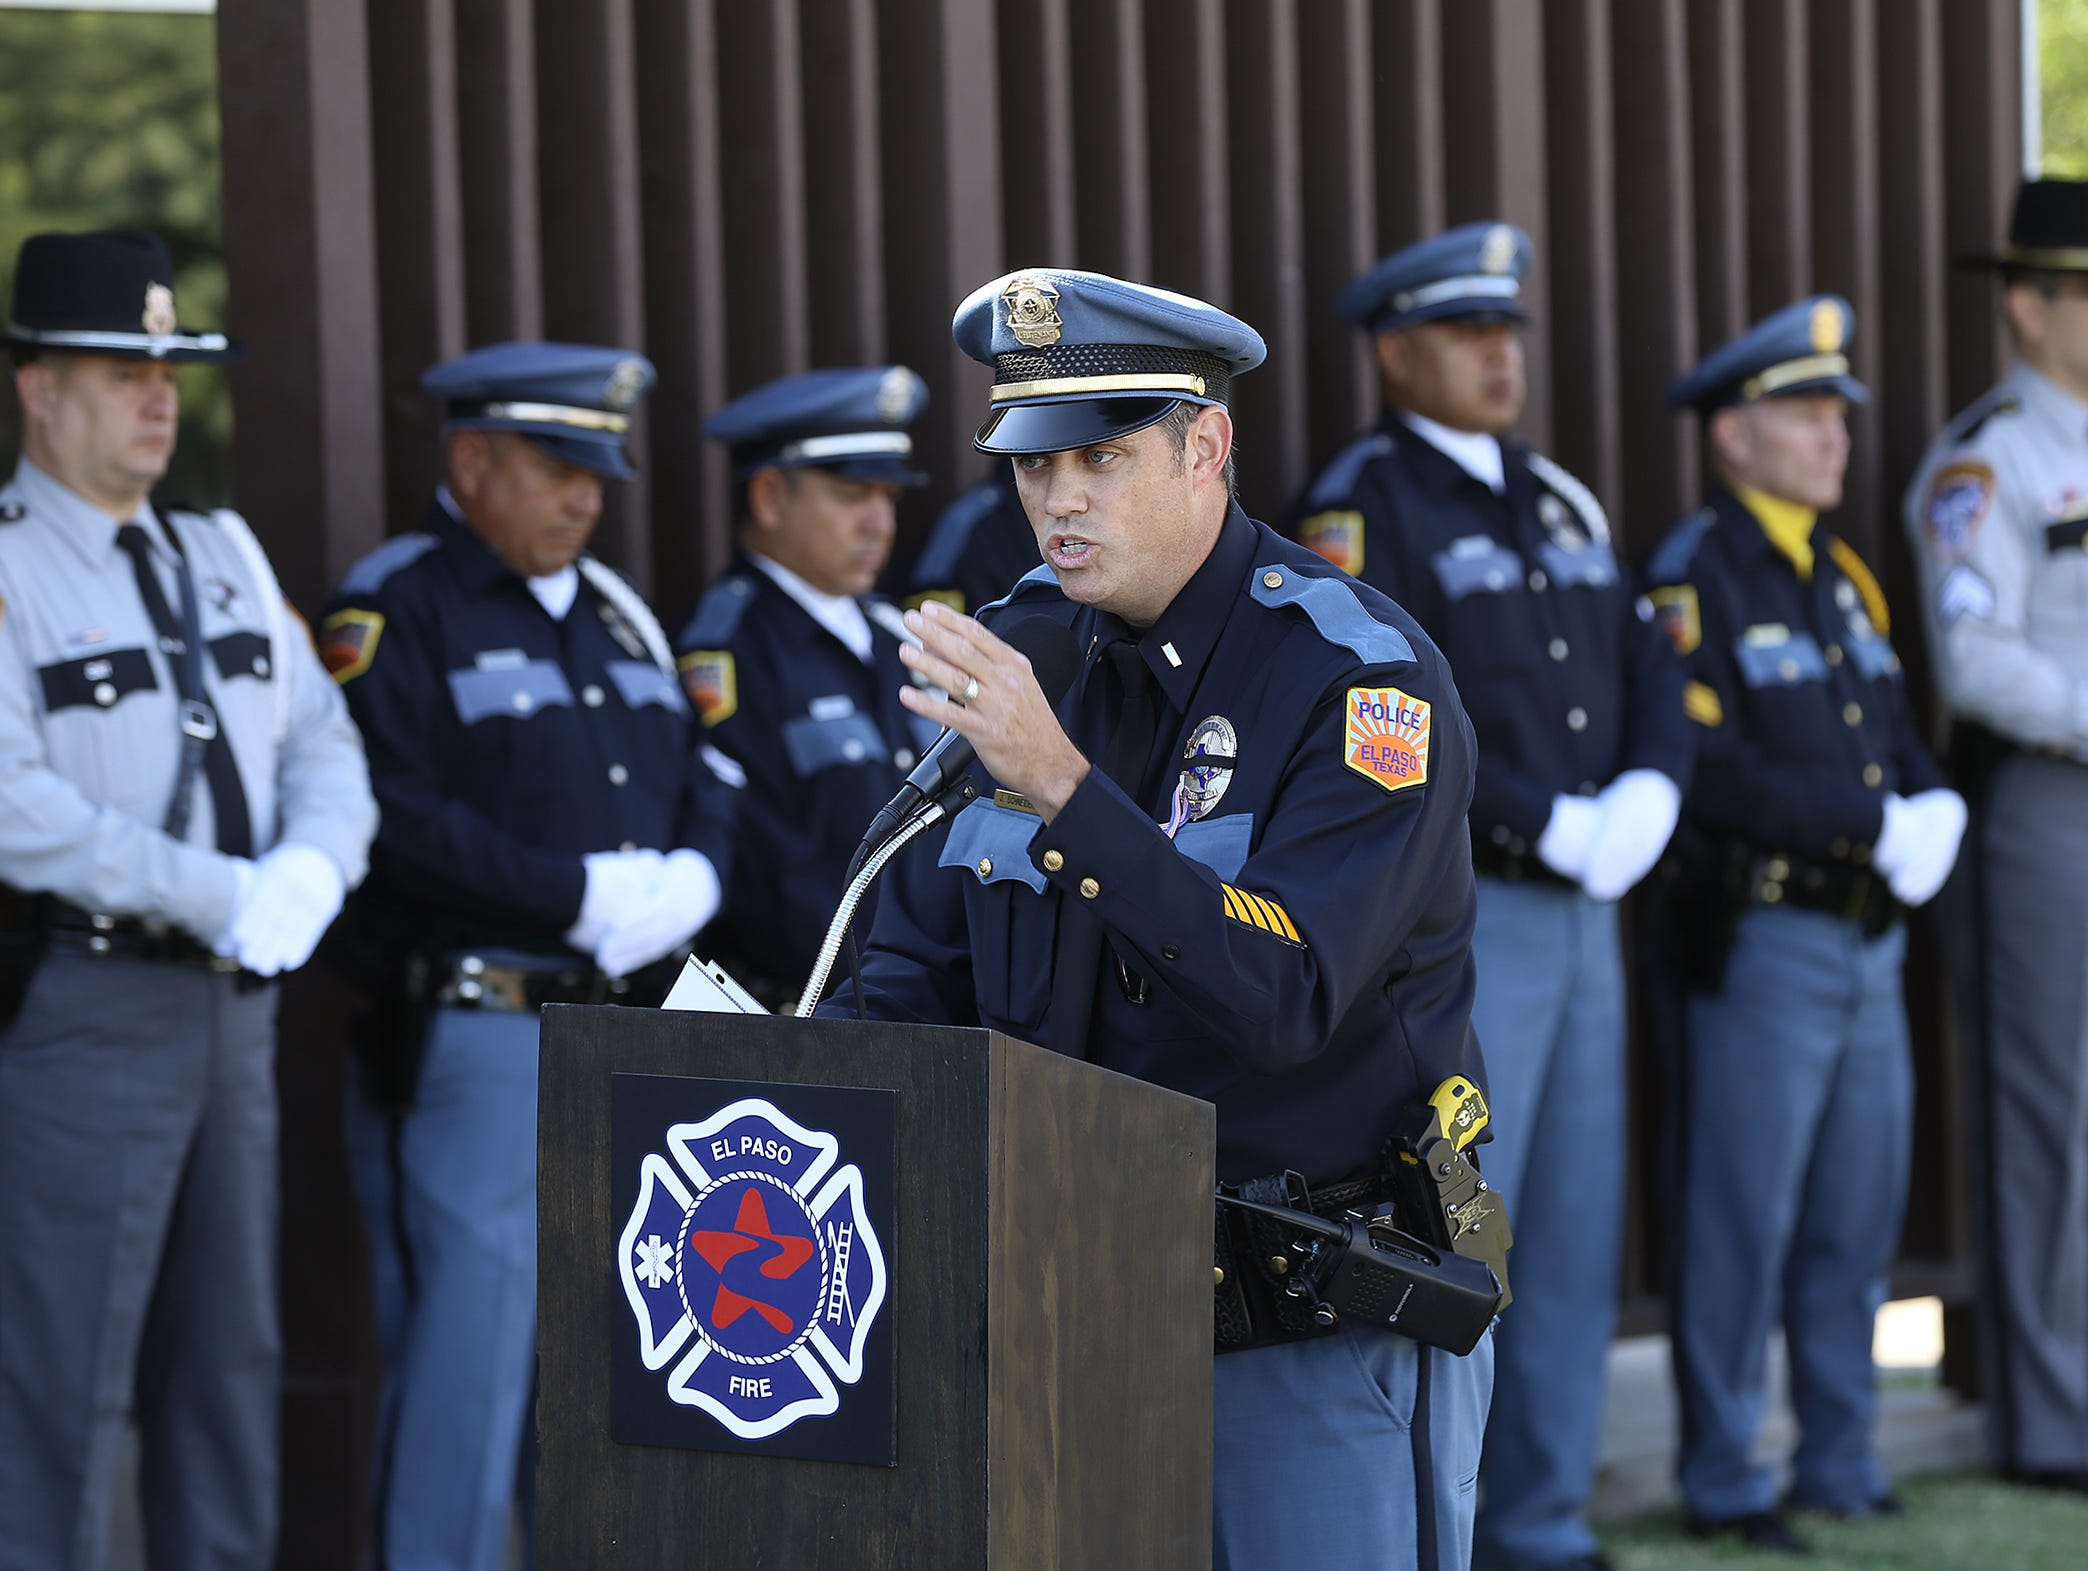 El Paso Police Department Lt. John Schneider recalls 9/11 during the 9/11 Memorial Ceremony Tuesday at Fire Station 18. Schneider was a member of the NYPD during the 9/11 attacks on the World Trade Center.